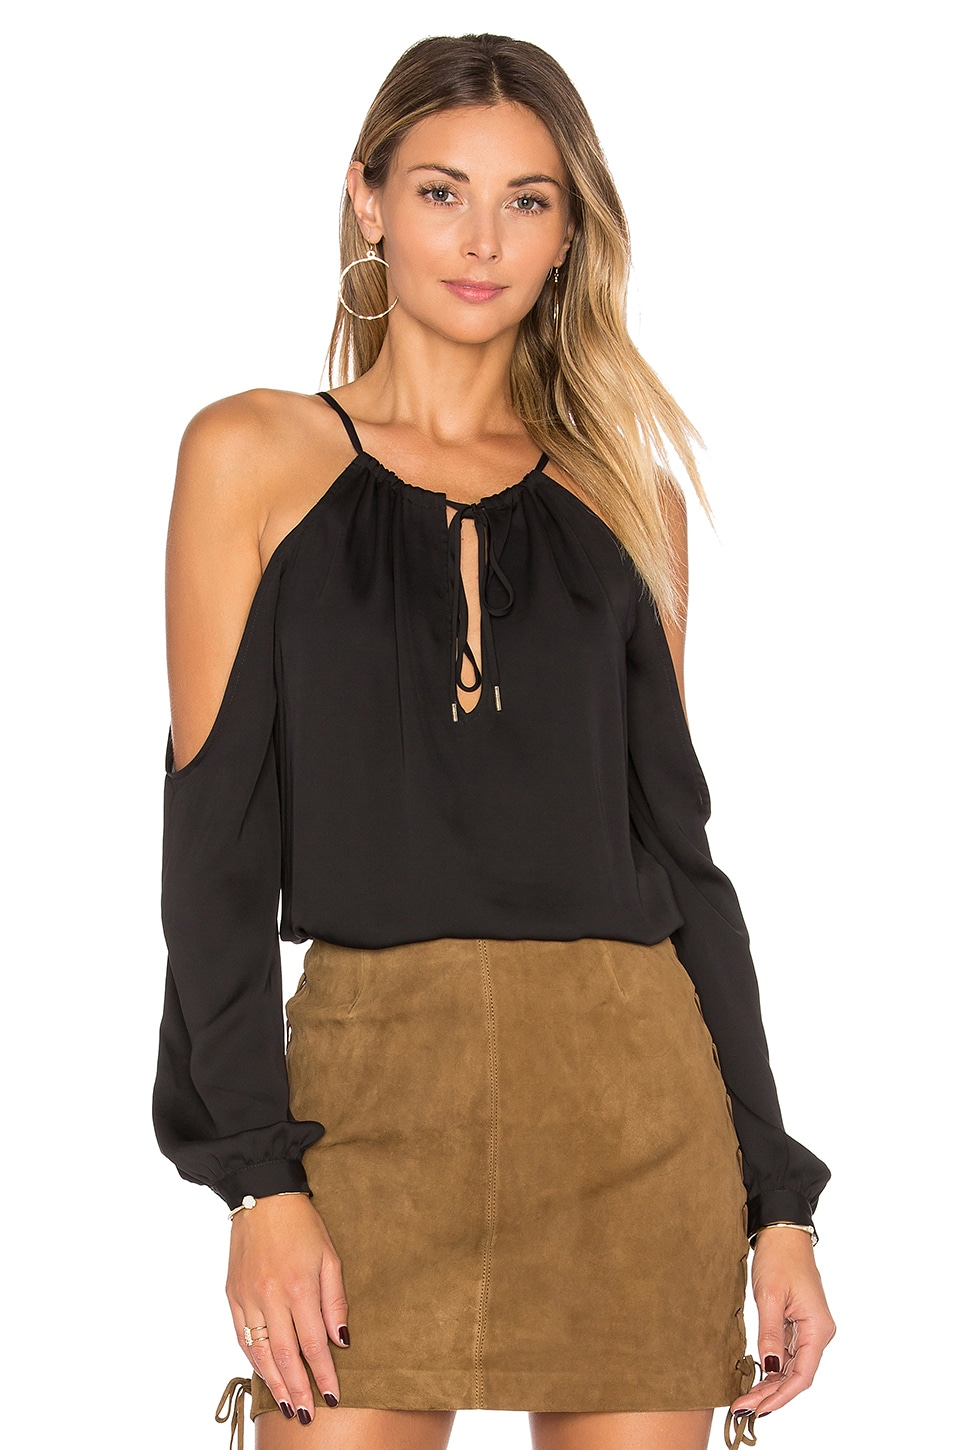 The Deep V Shoulder Top by L'Academie